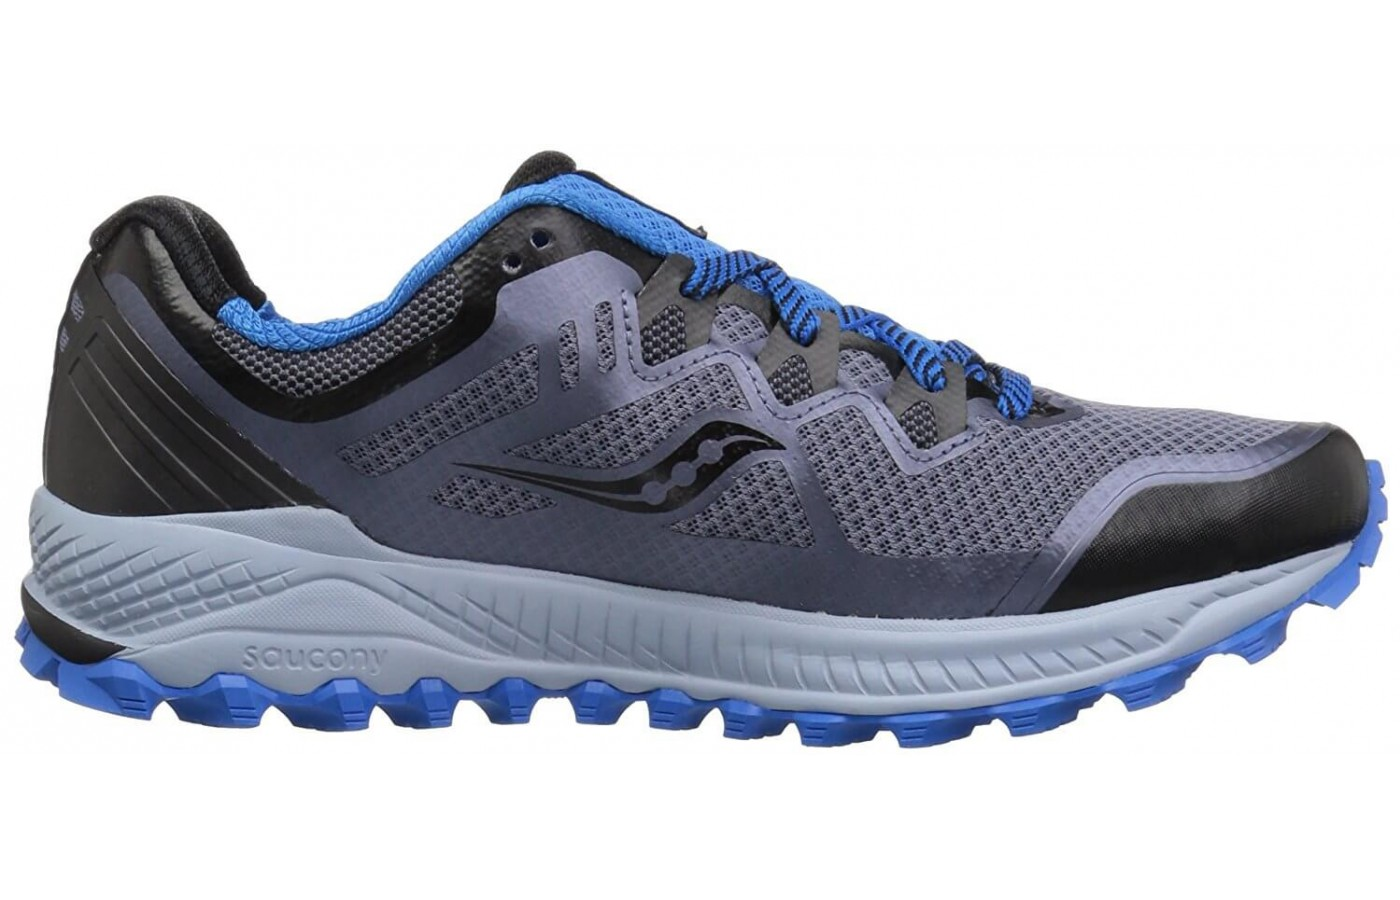 The Saucony Peregrine 8 has 6mm lugs